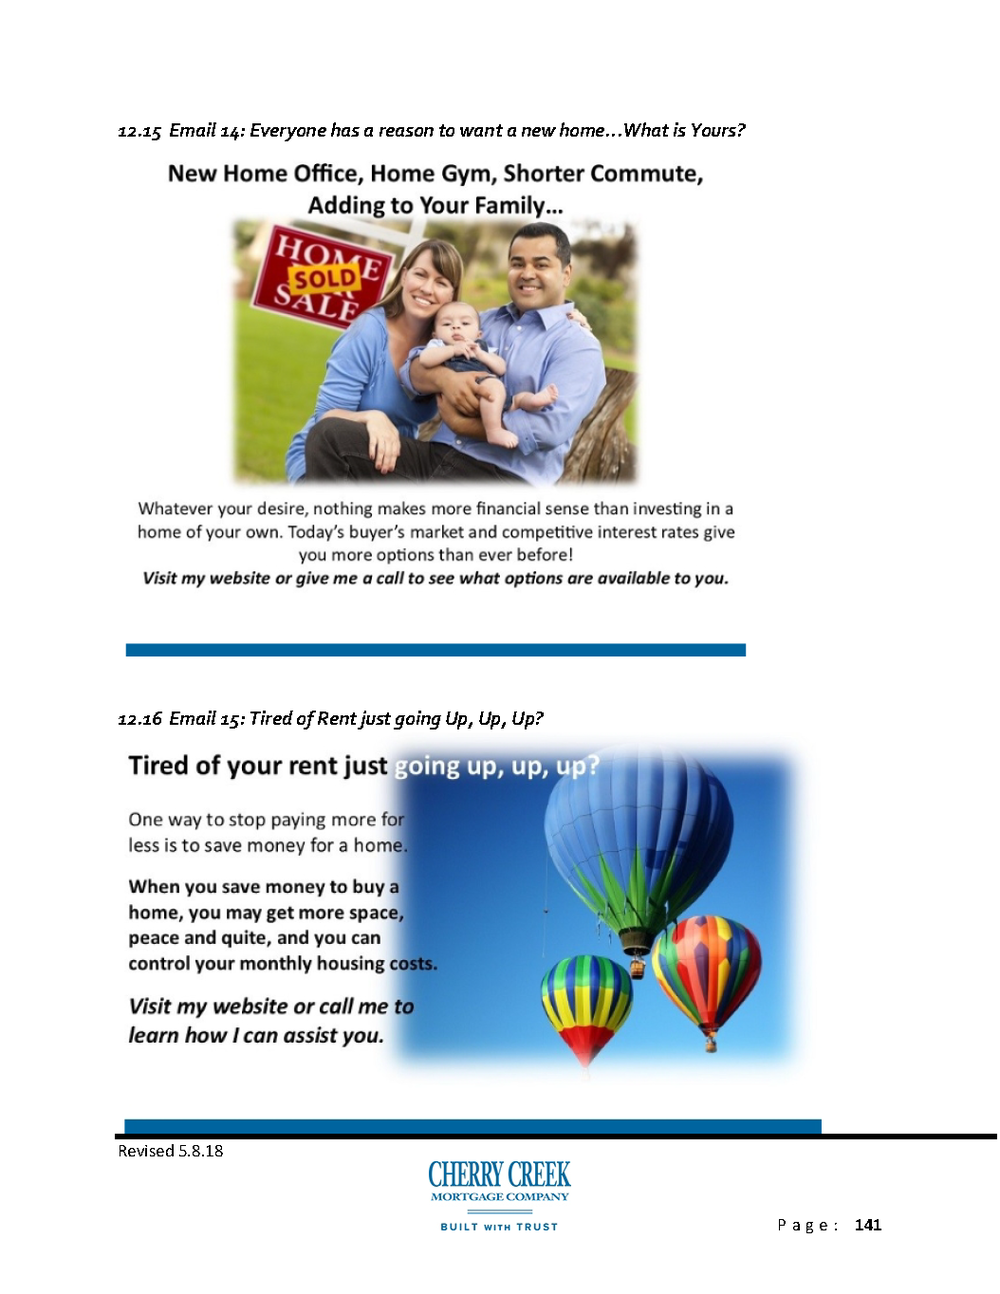 Jungo_Email_Drip_Campaigns-Consumers_D1O6plI_Page_141.png